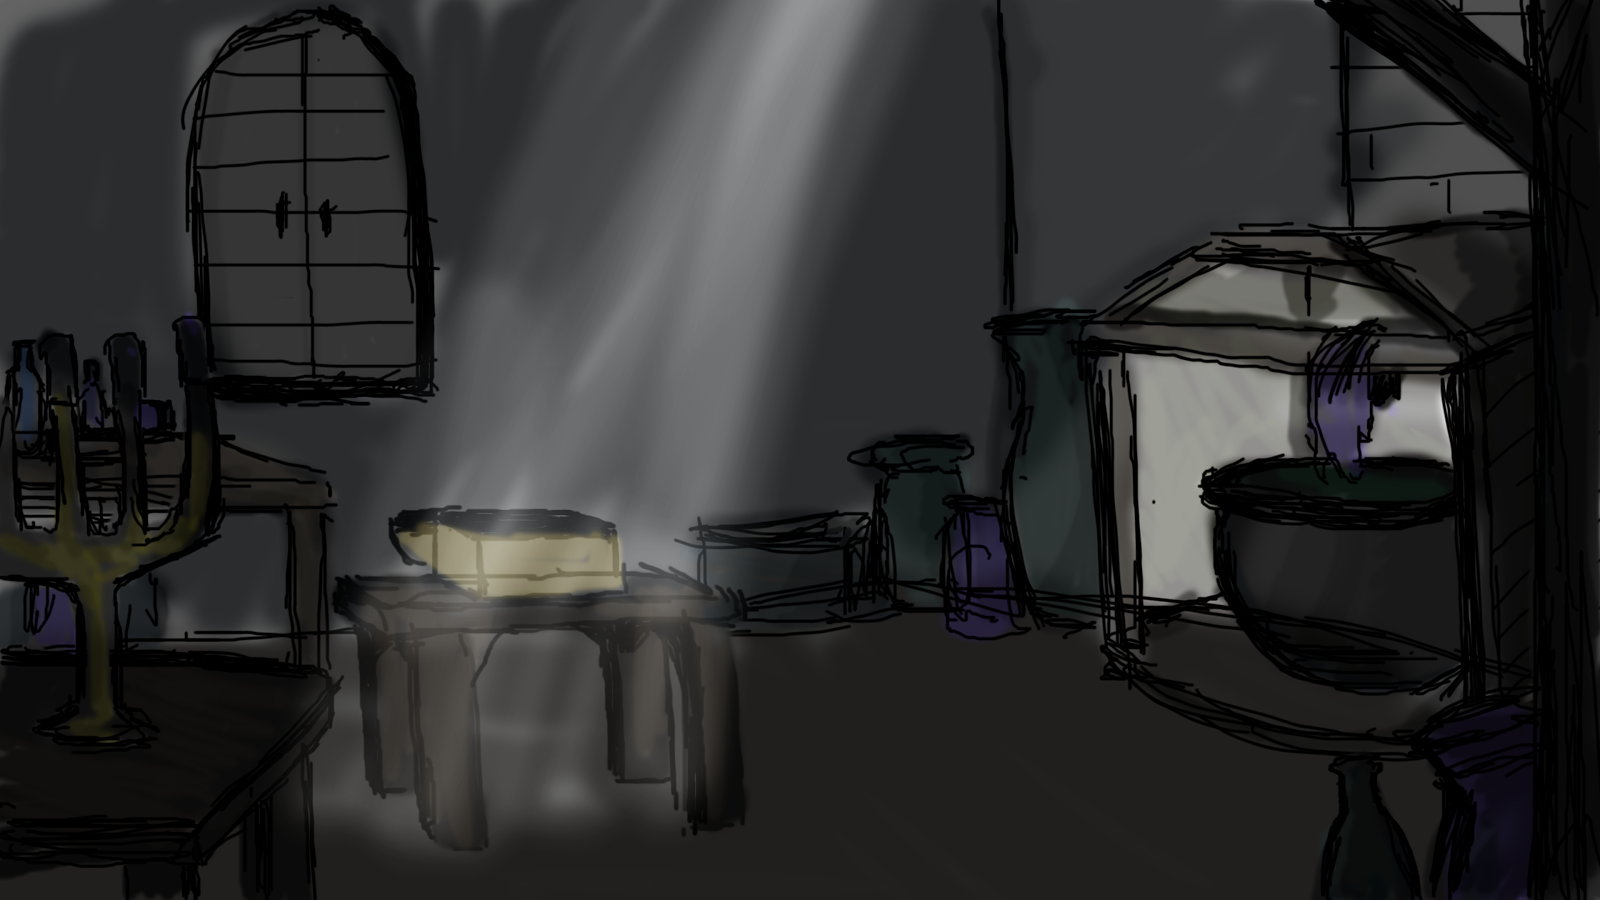 But I Dont Think Saturation Will Be Very Effective Especially Since The Room Fairly Dark Anyway